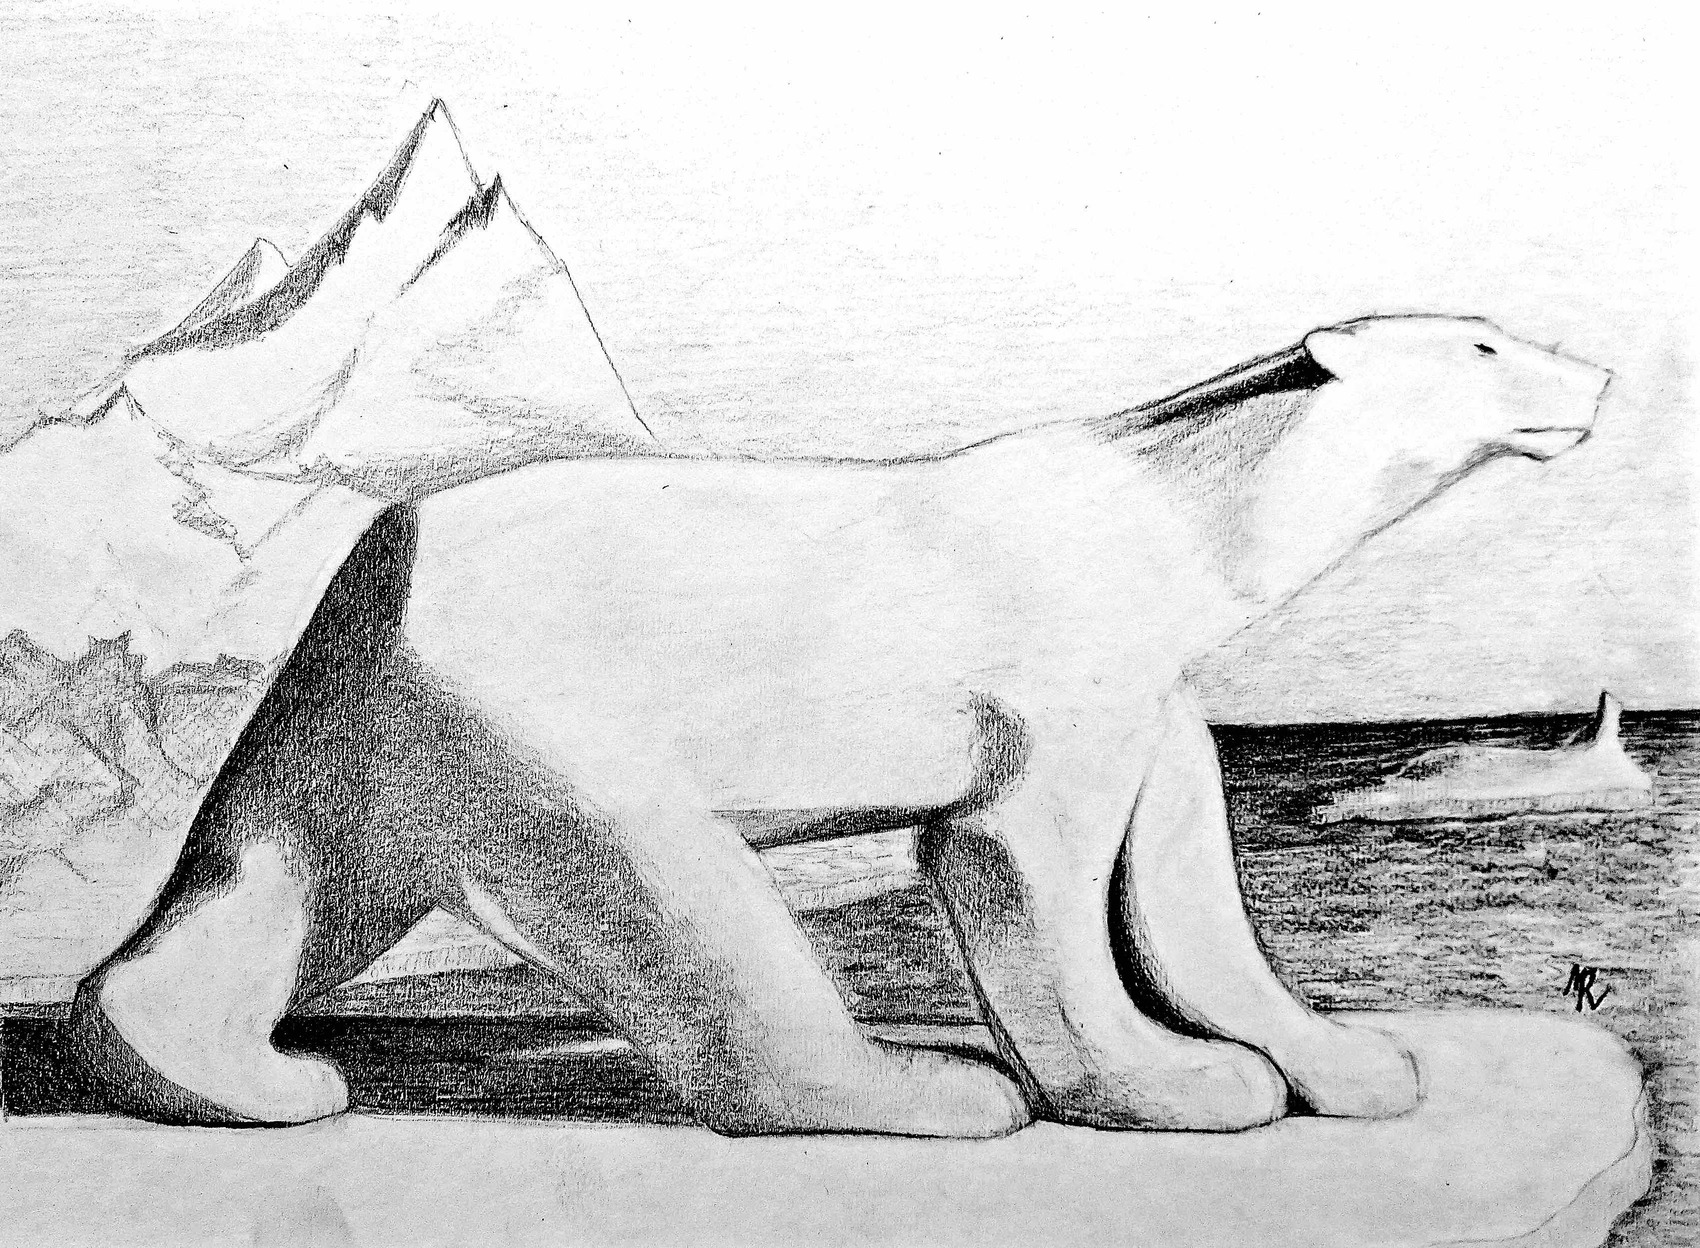 Dessin Ours Blanc Sur La Banquise Drawing A Polar Bear On The Ice Floe